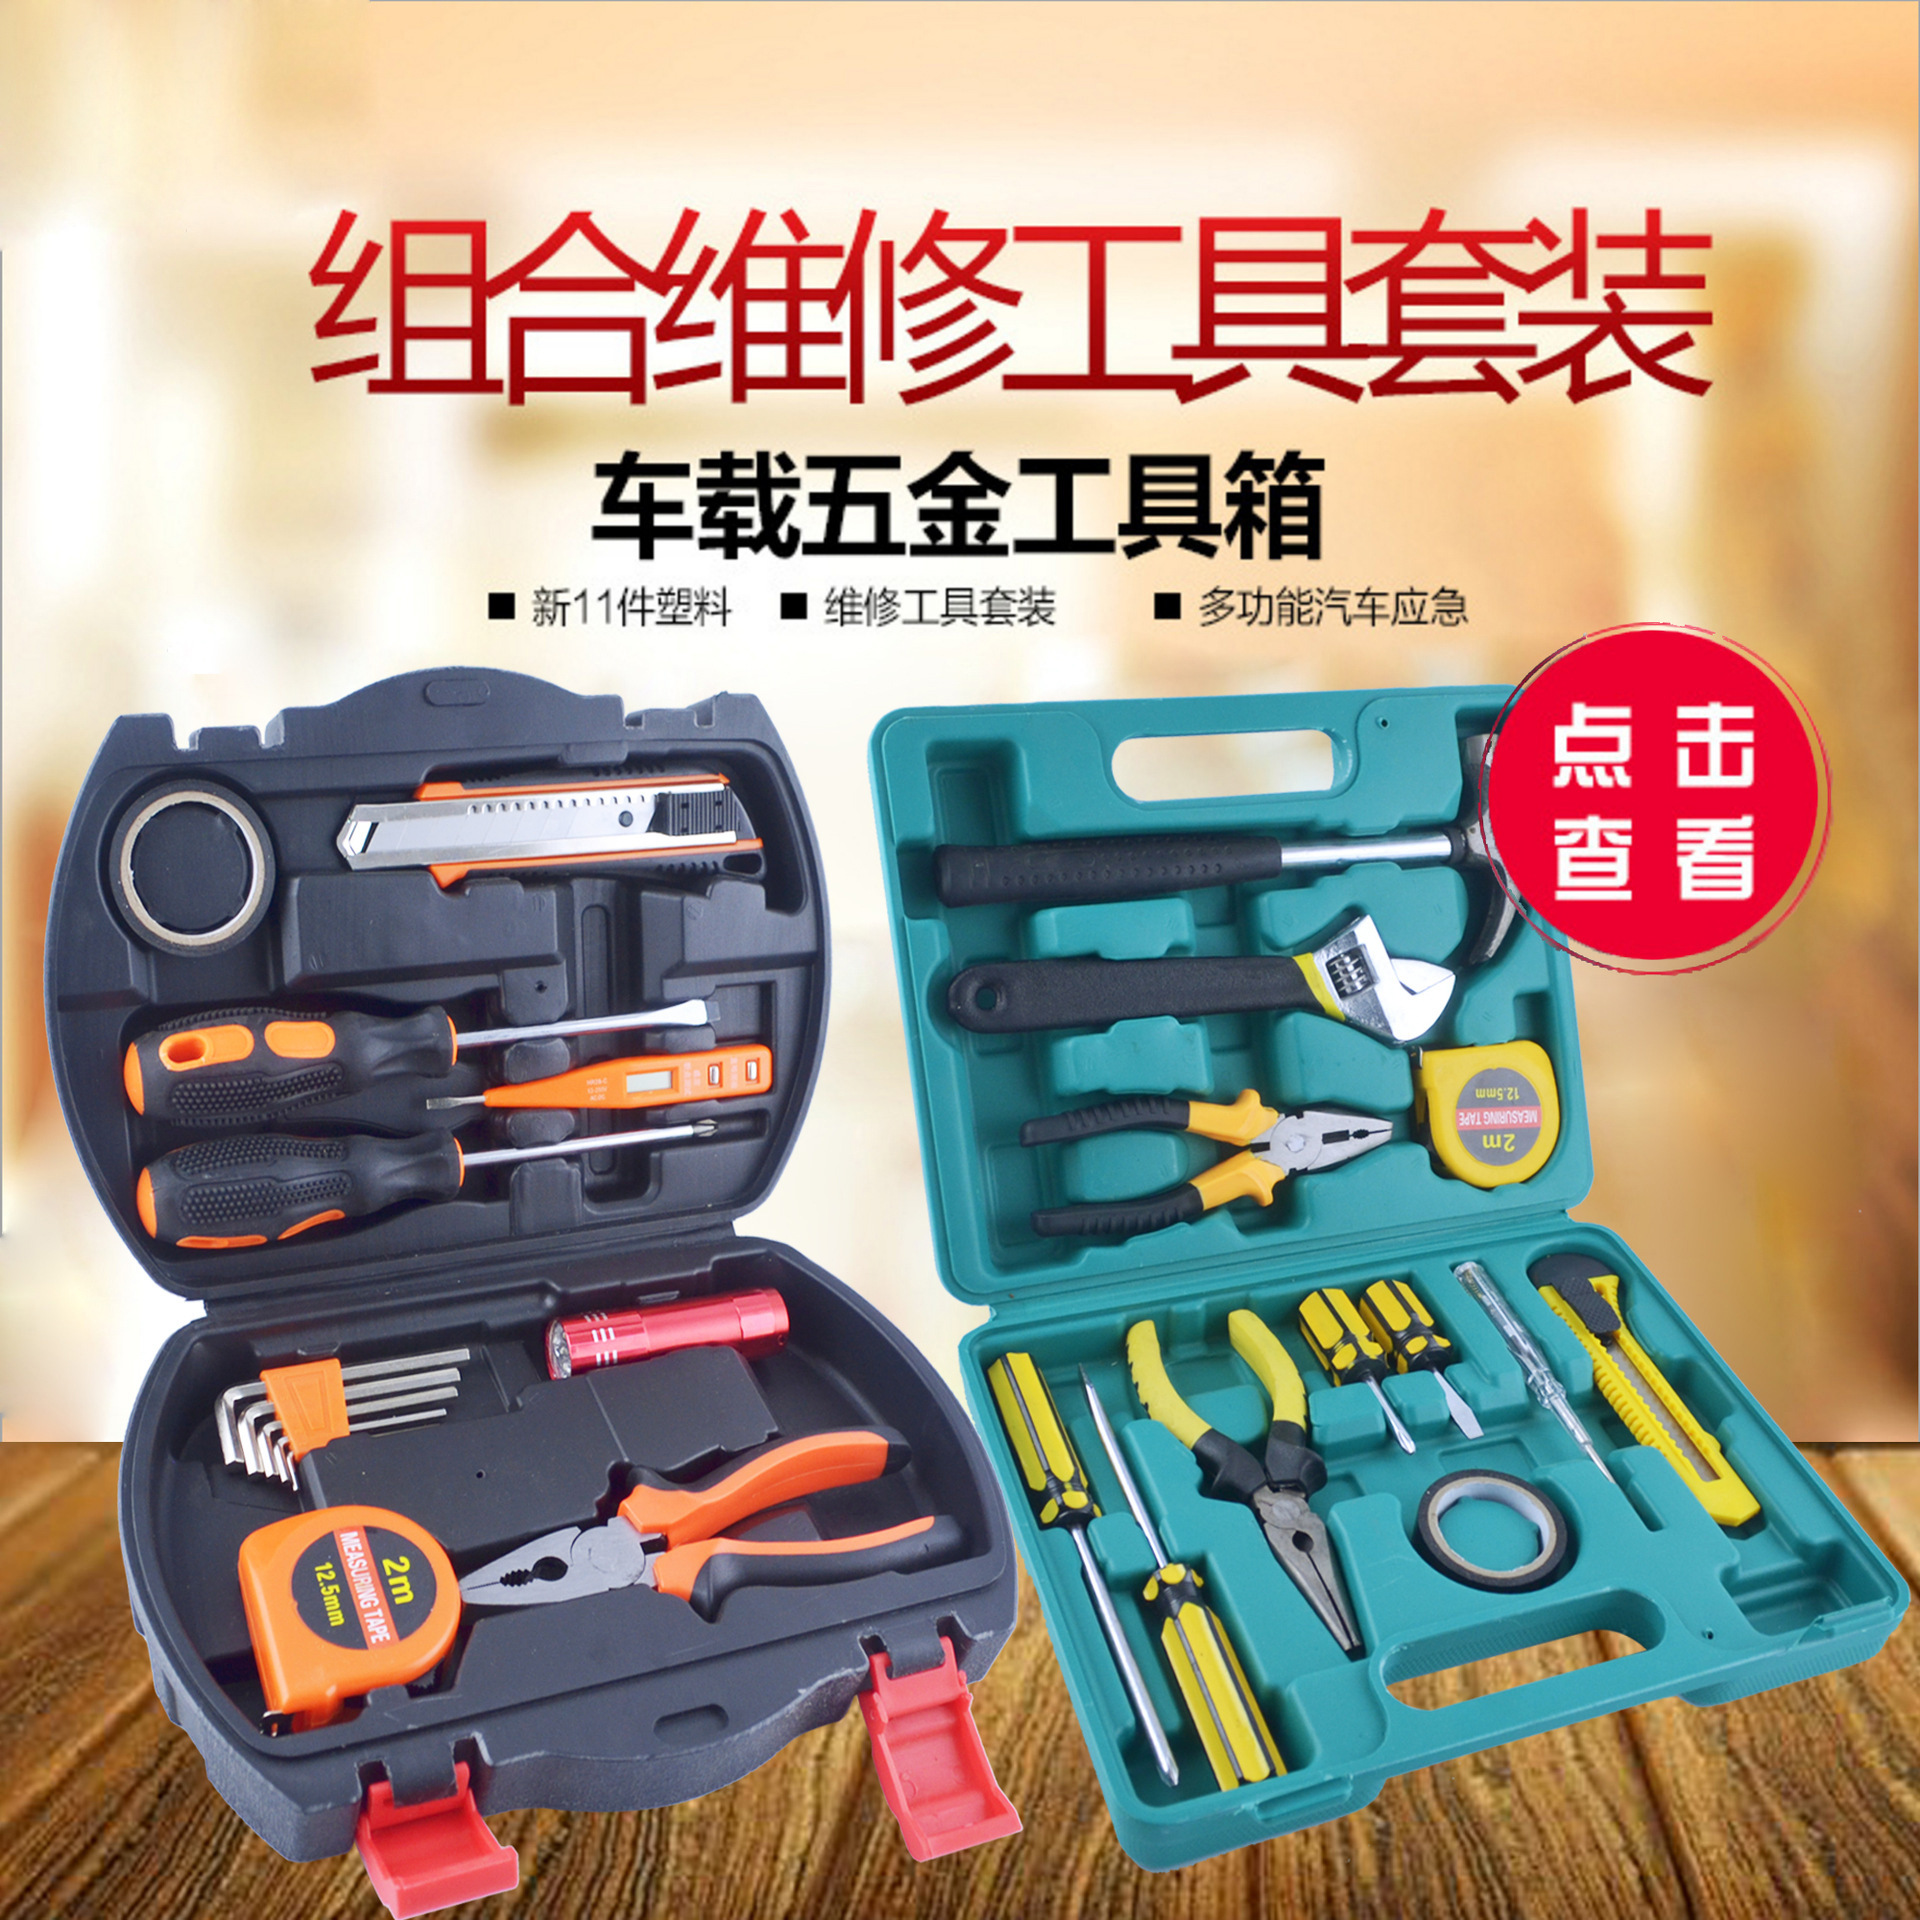 New 11 pieces of plastic manual combination tool set, multi function car hardware toolbox screwdriver set